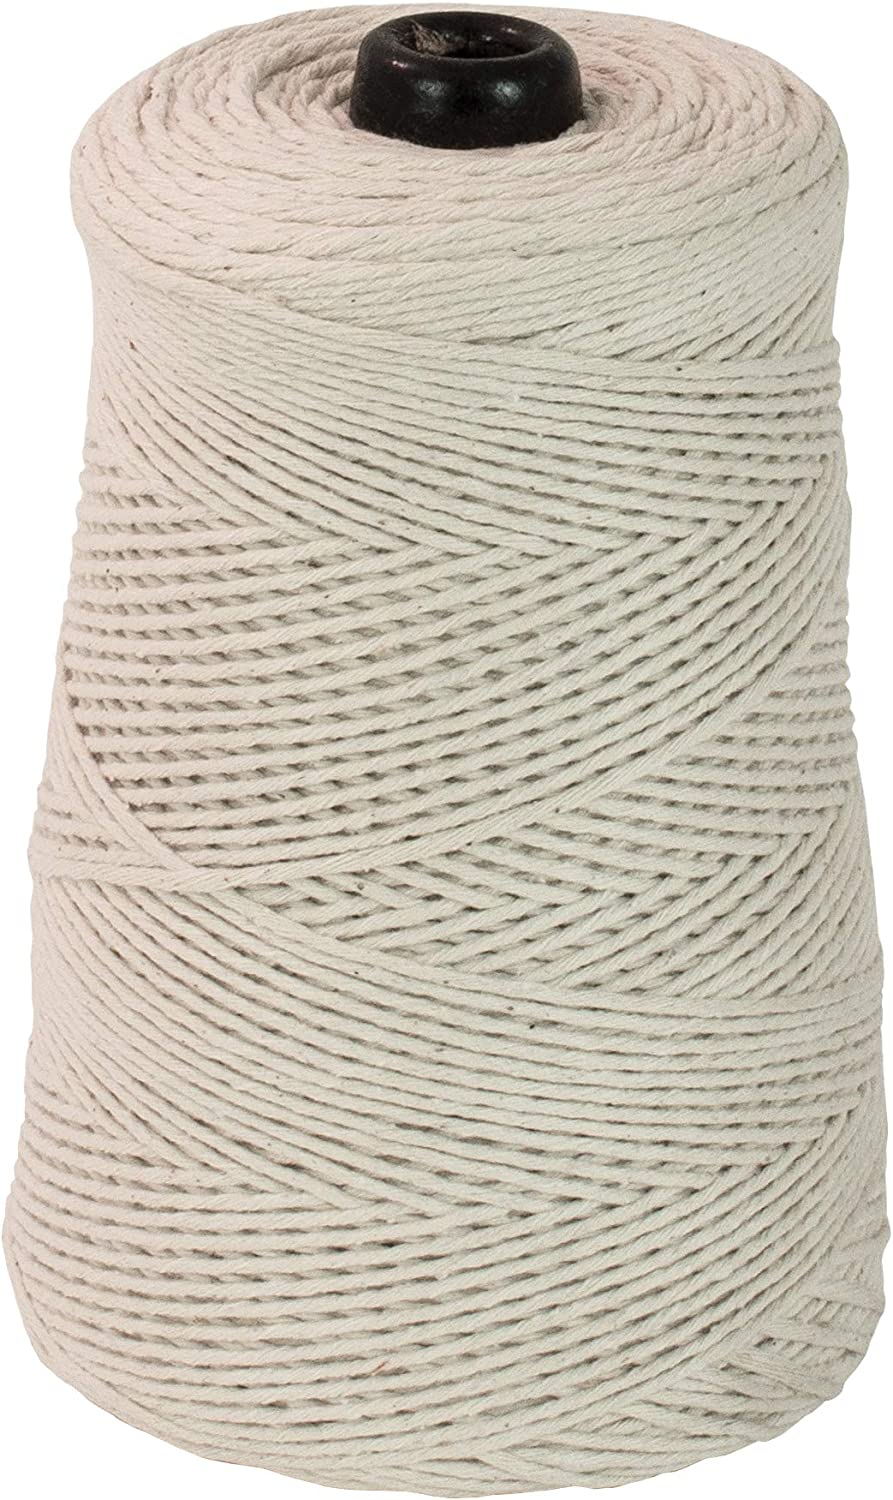 2021new shipping Max 50% OFF free Mrs. Anderson's Baking Cooking All-Natural 1-Pound Twine Cone